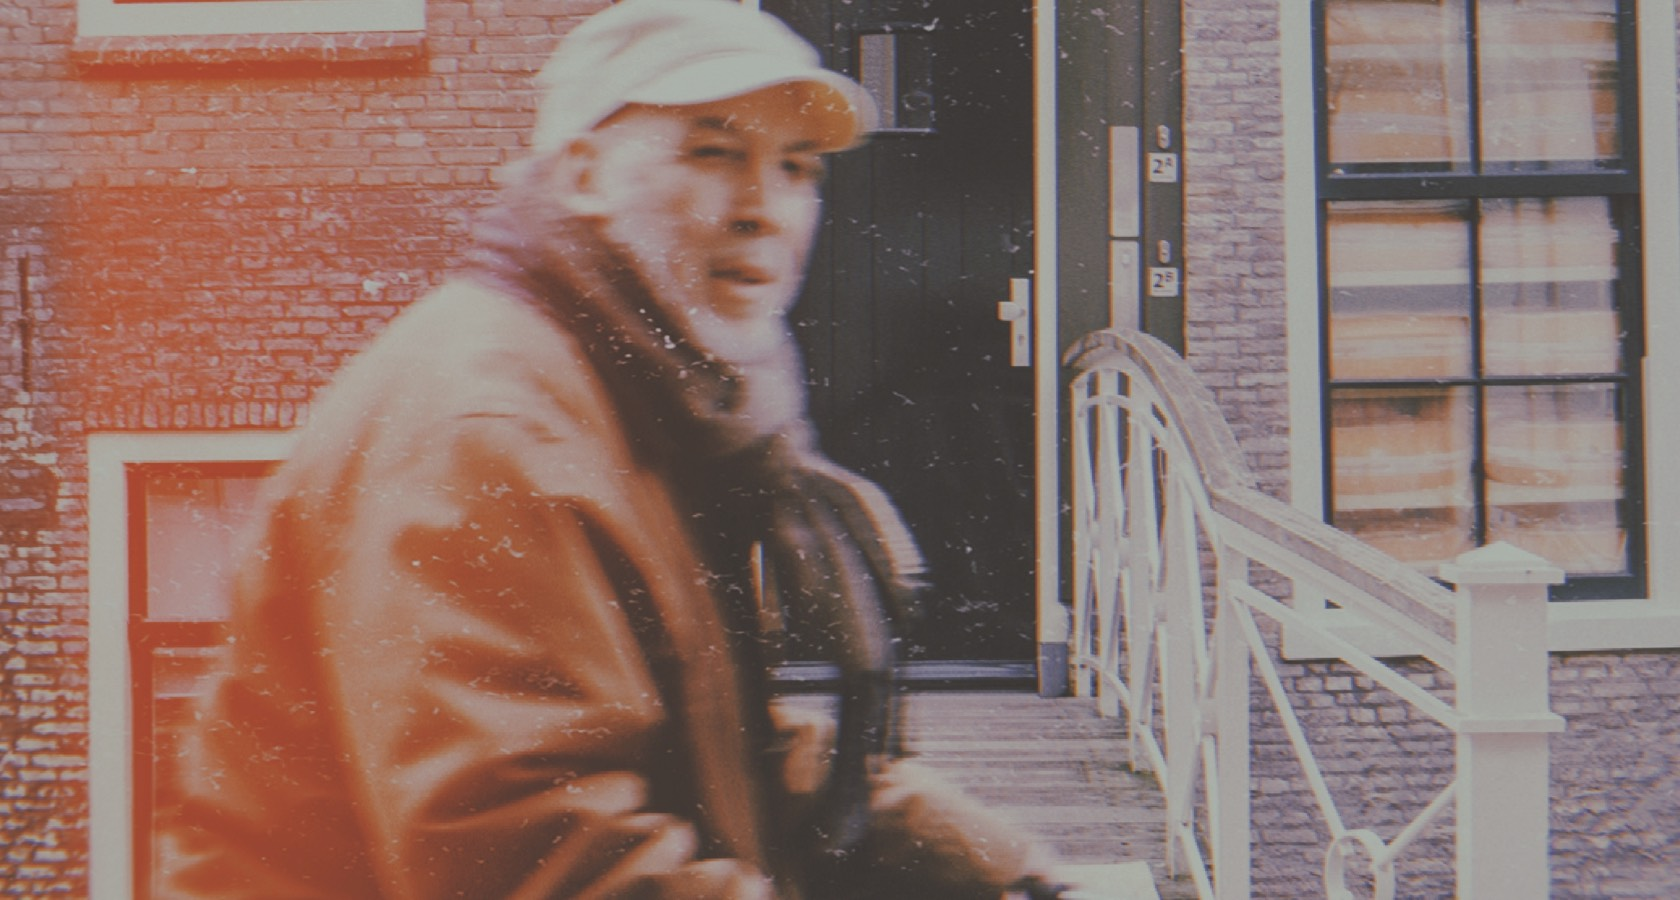 Elderly Man wearing a scarf, coat, and hat Outside in a City